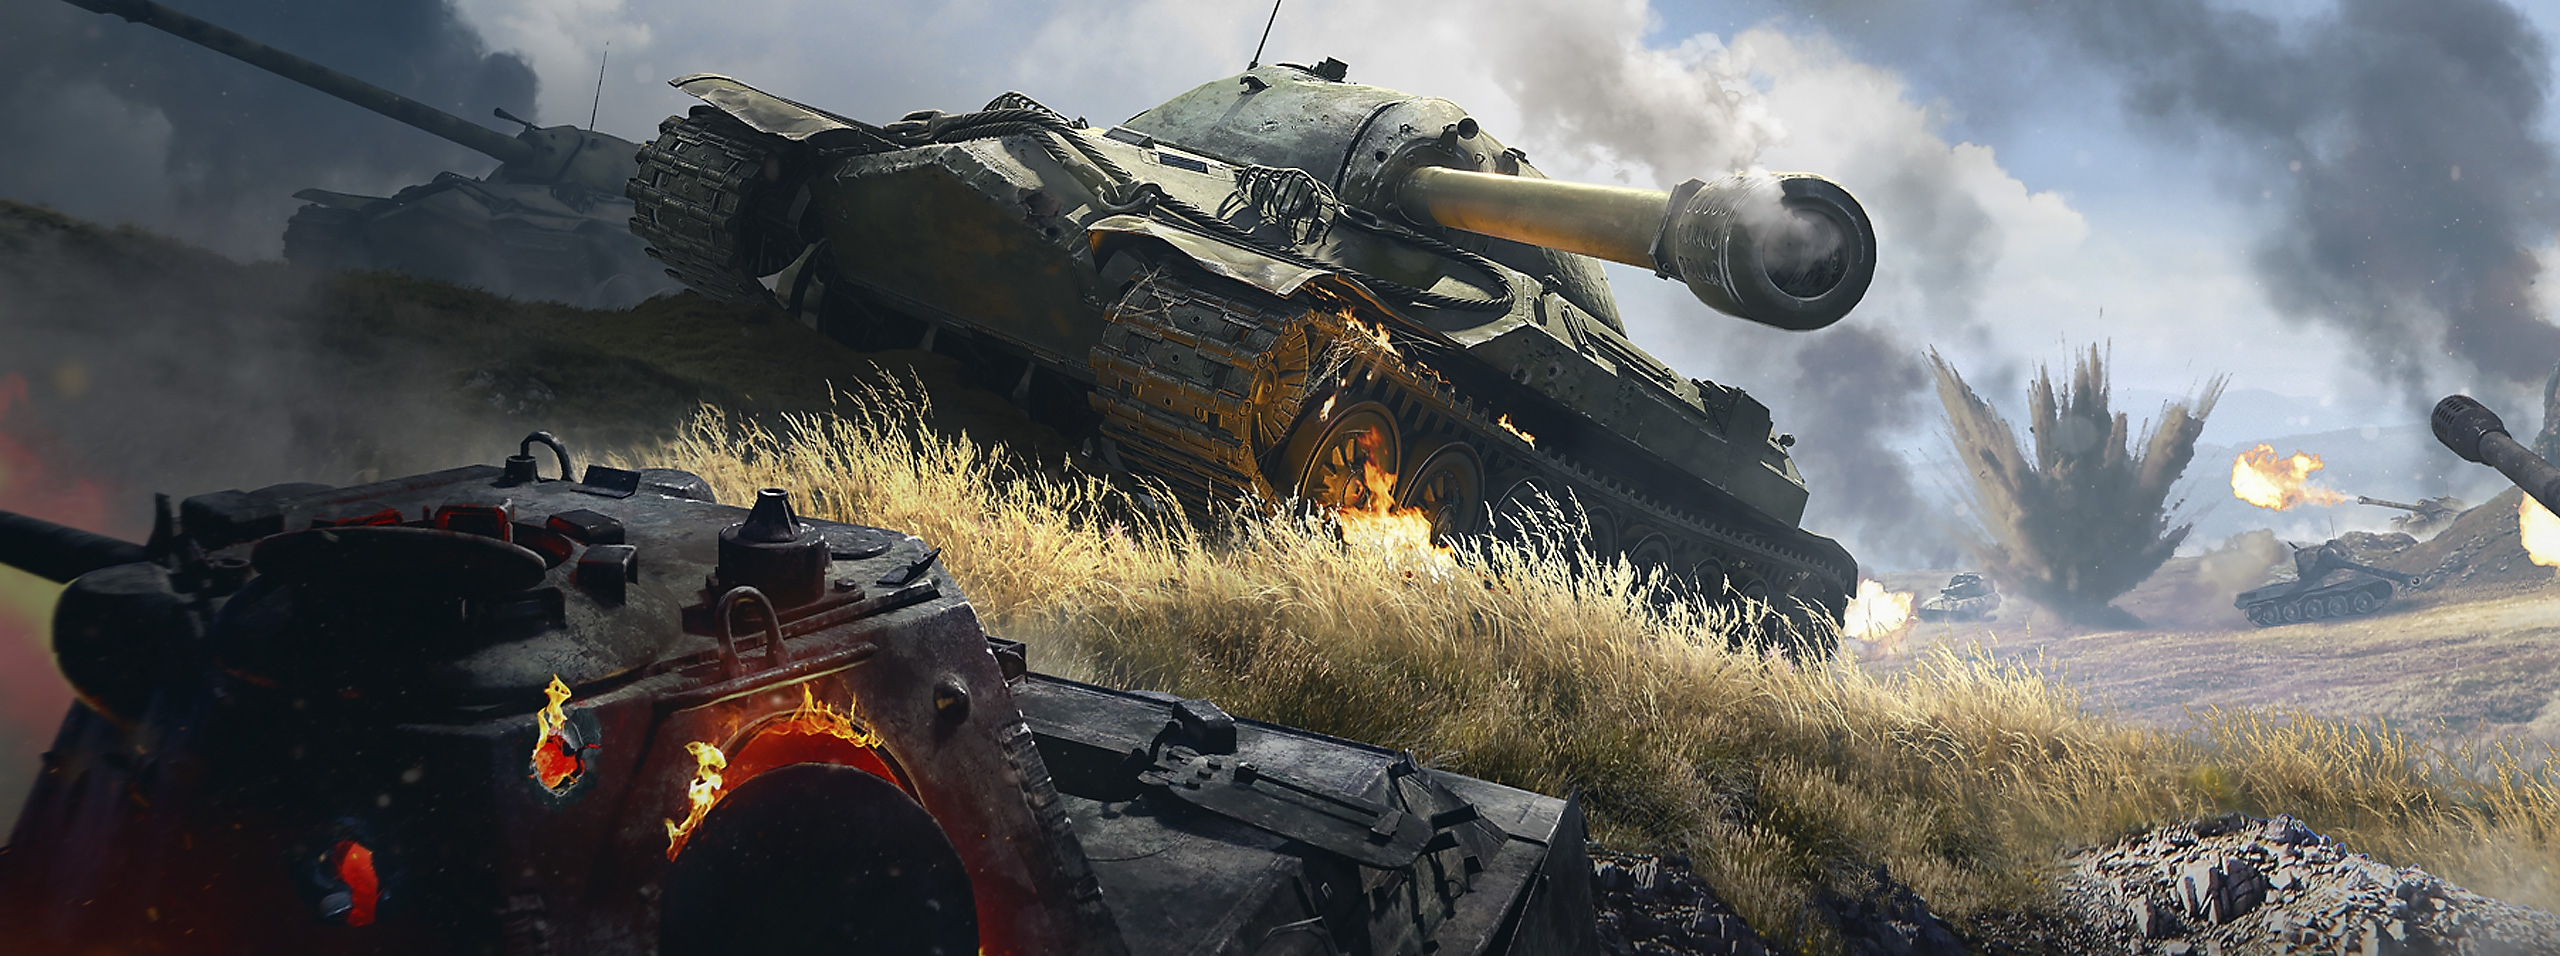 Arte guía de World of Tanks